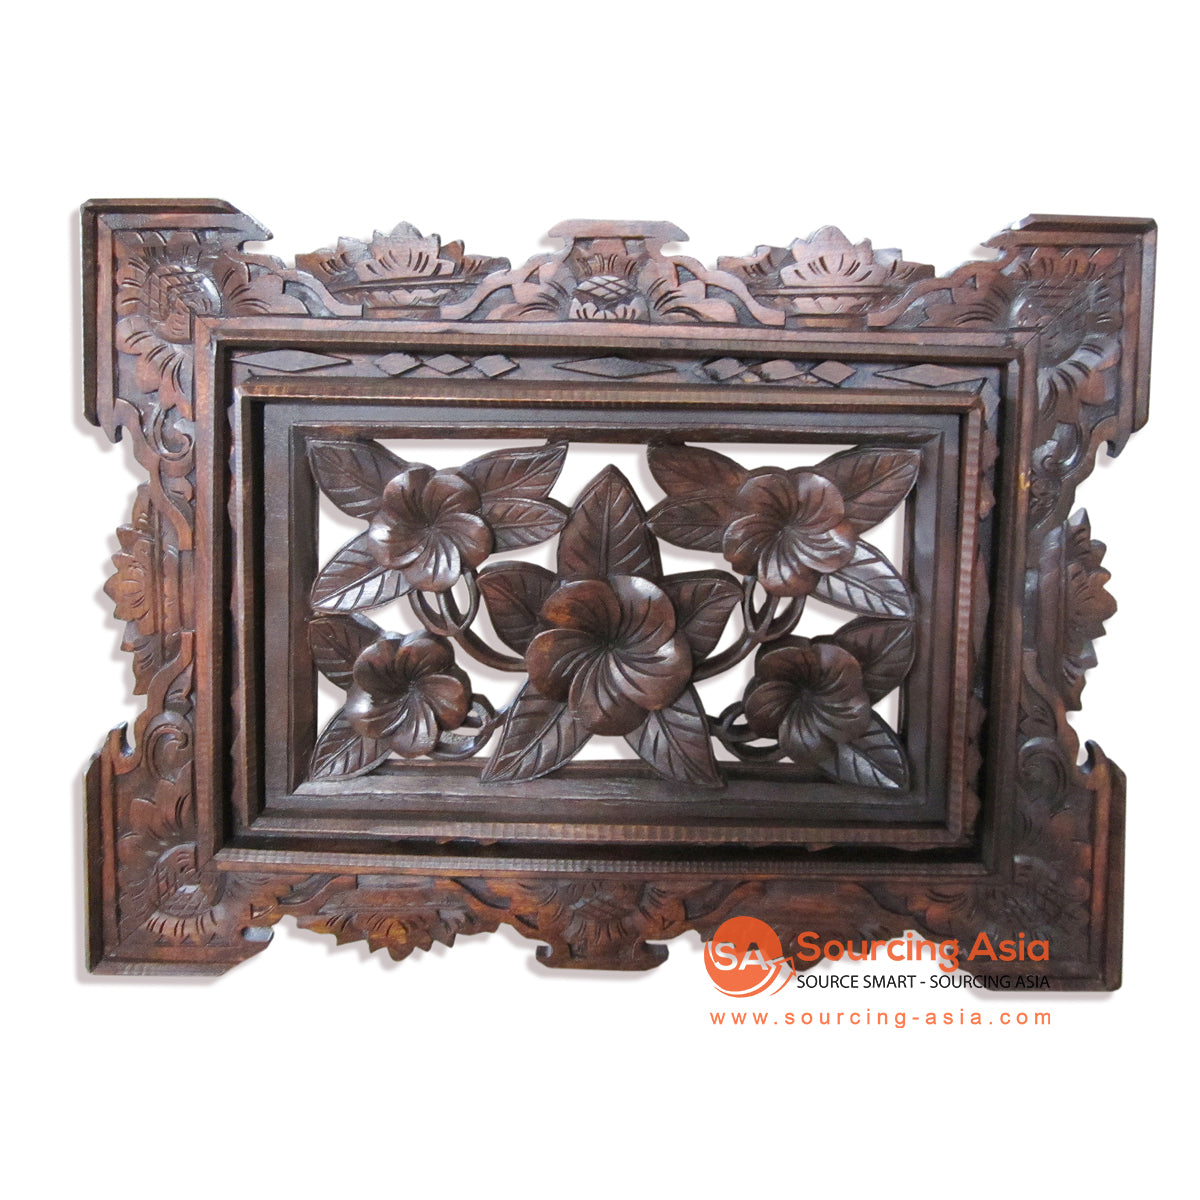 GUR005-A WOODEN WALL DECORATION WITH CARVING